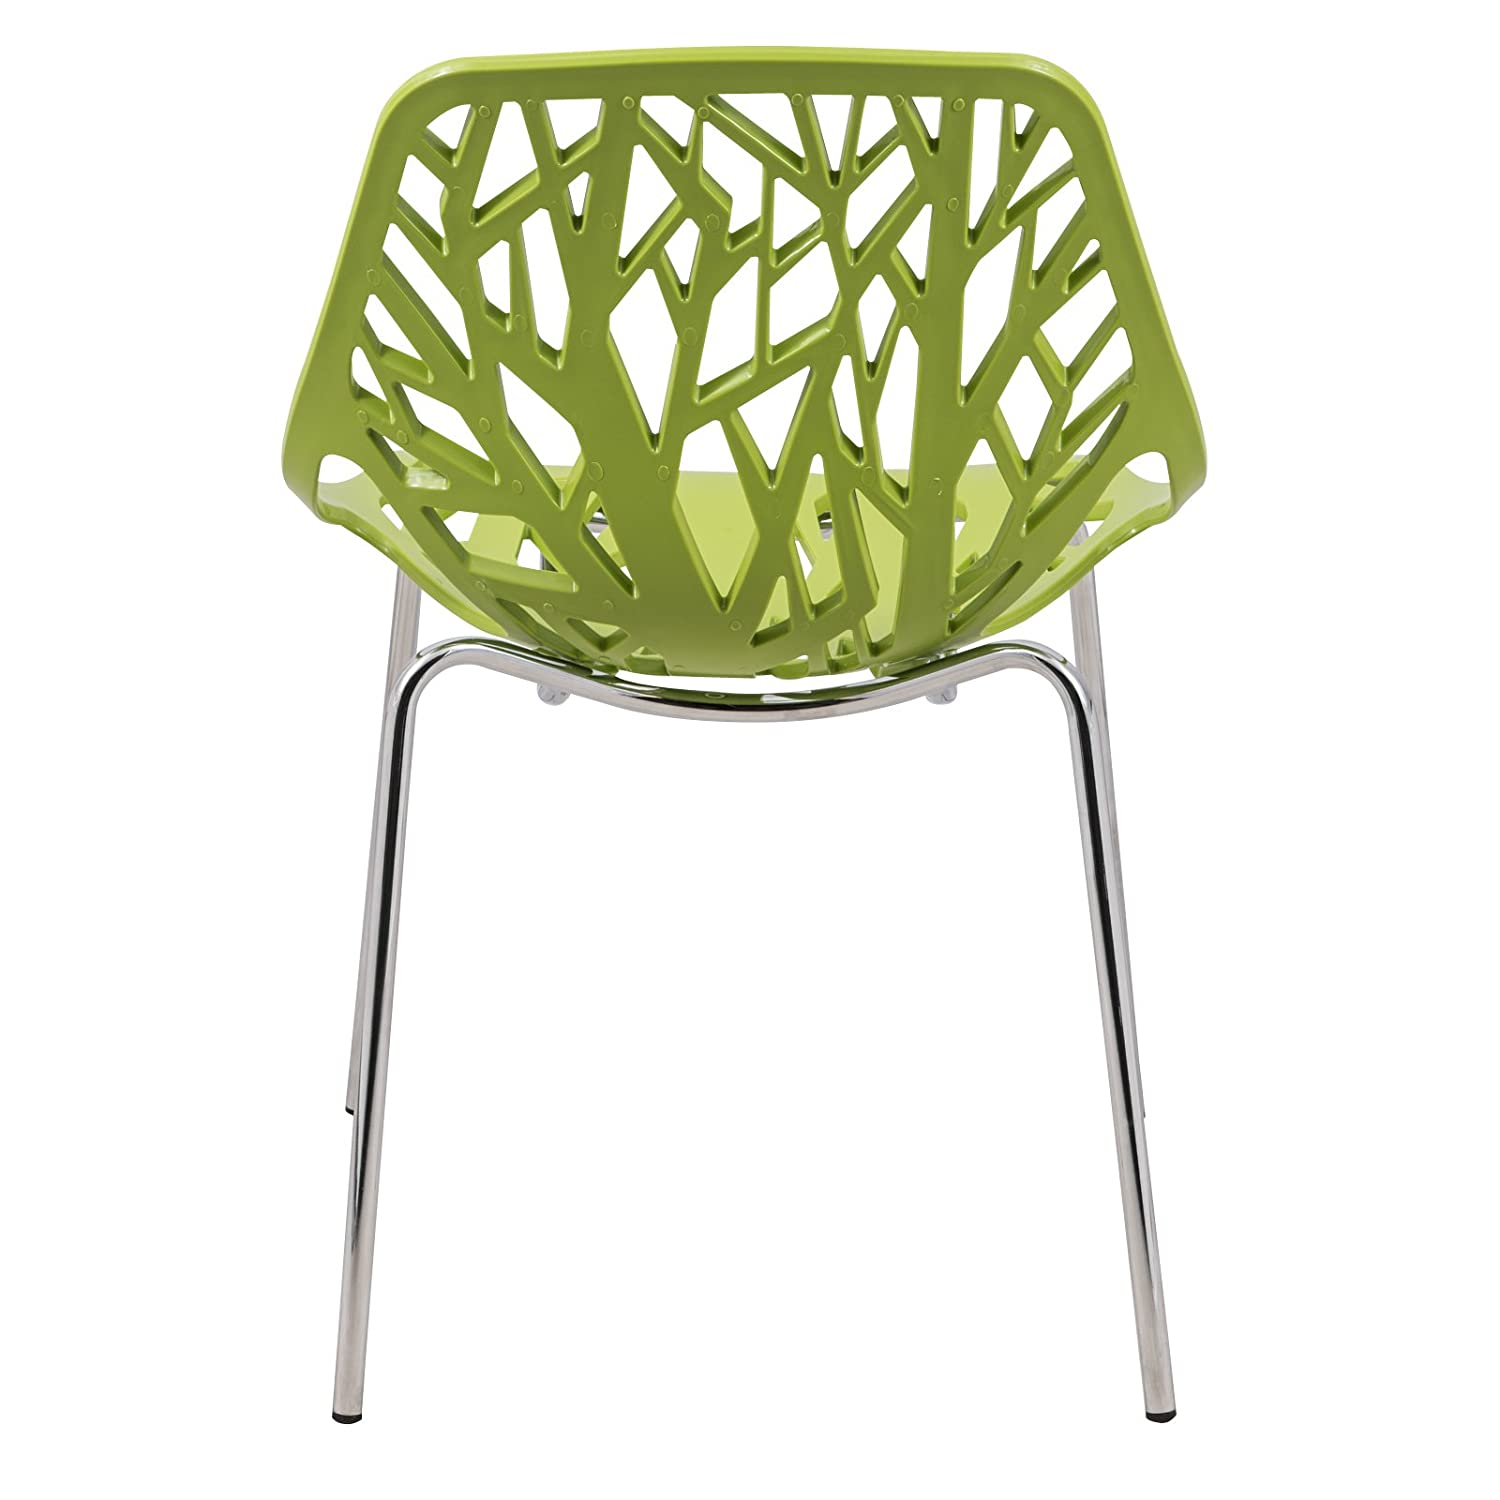 Amazon.com - LeisureMod Modern Asbury Dining Chair with Chromed Legs Green Set of 2 - Chairs  sc 1 st  Amazon.com & Amazon.com - LeisureMod Modern Asbury Dining Chair with Chromed Legs ...